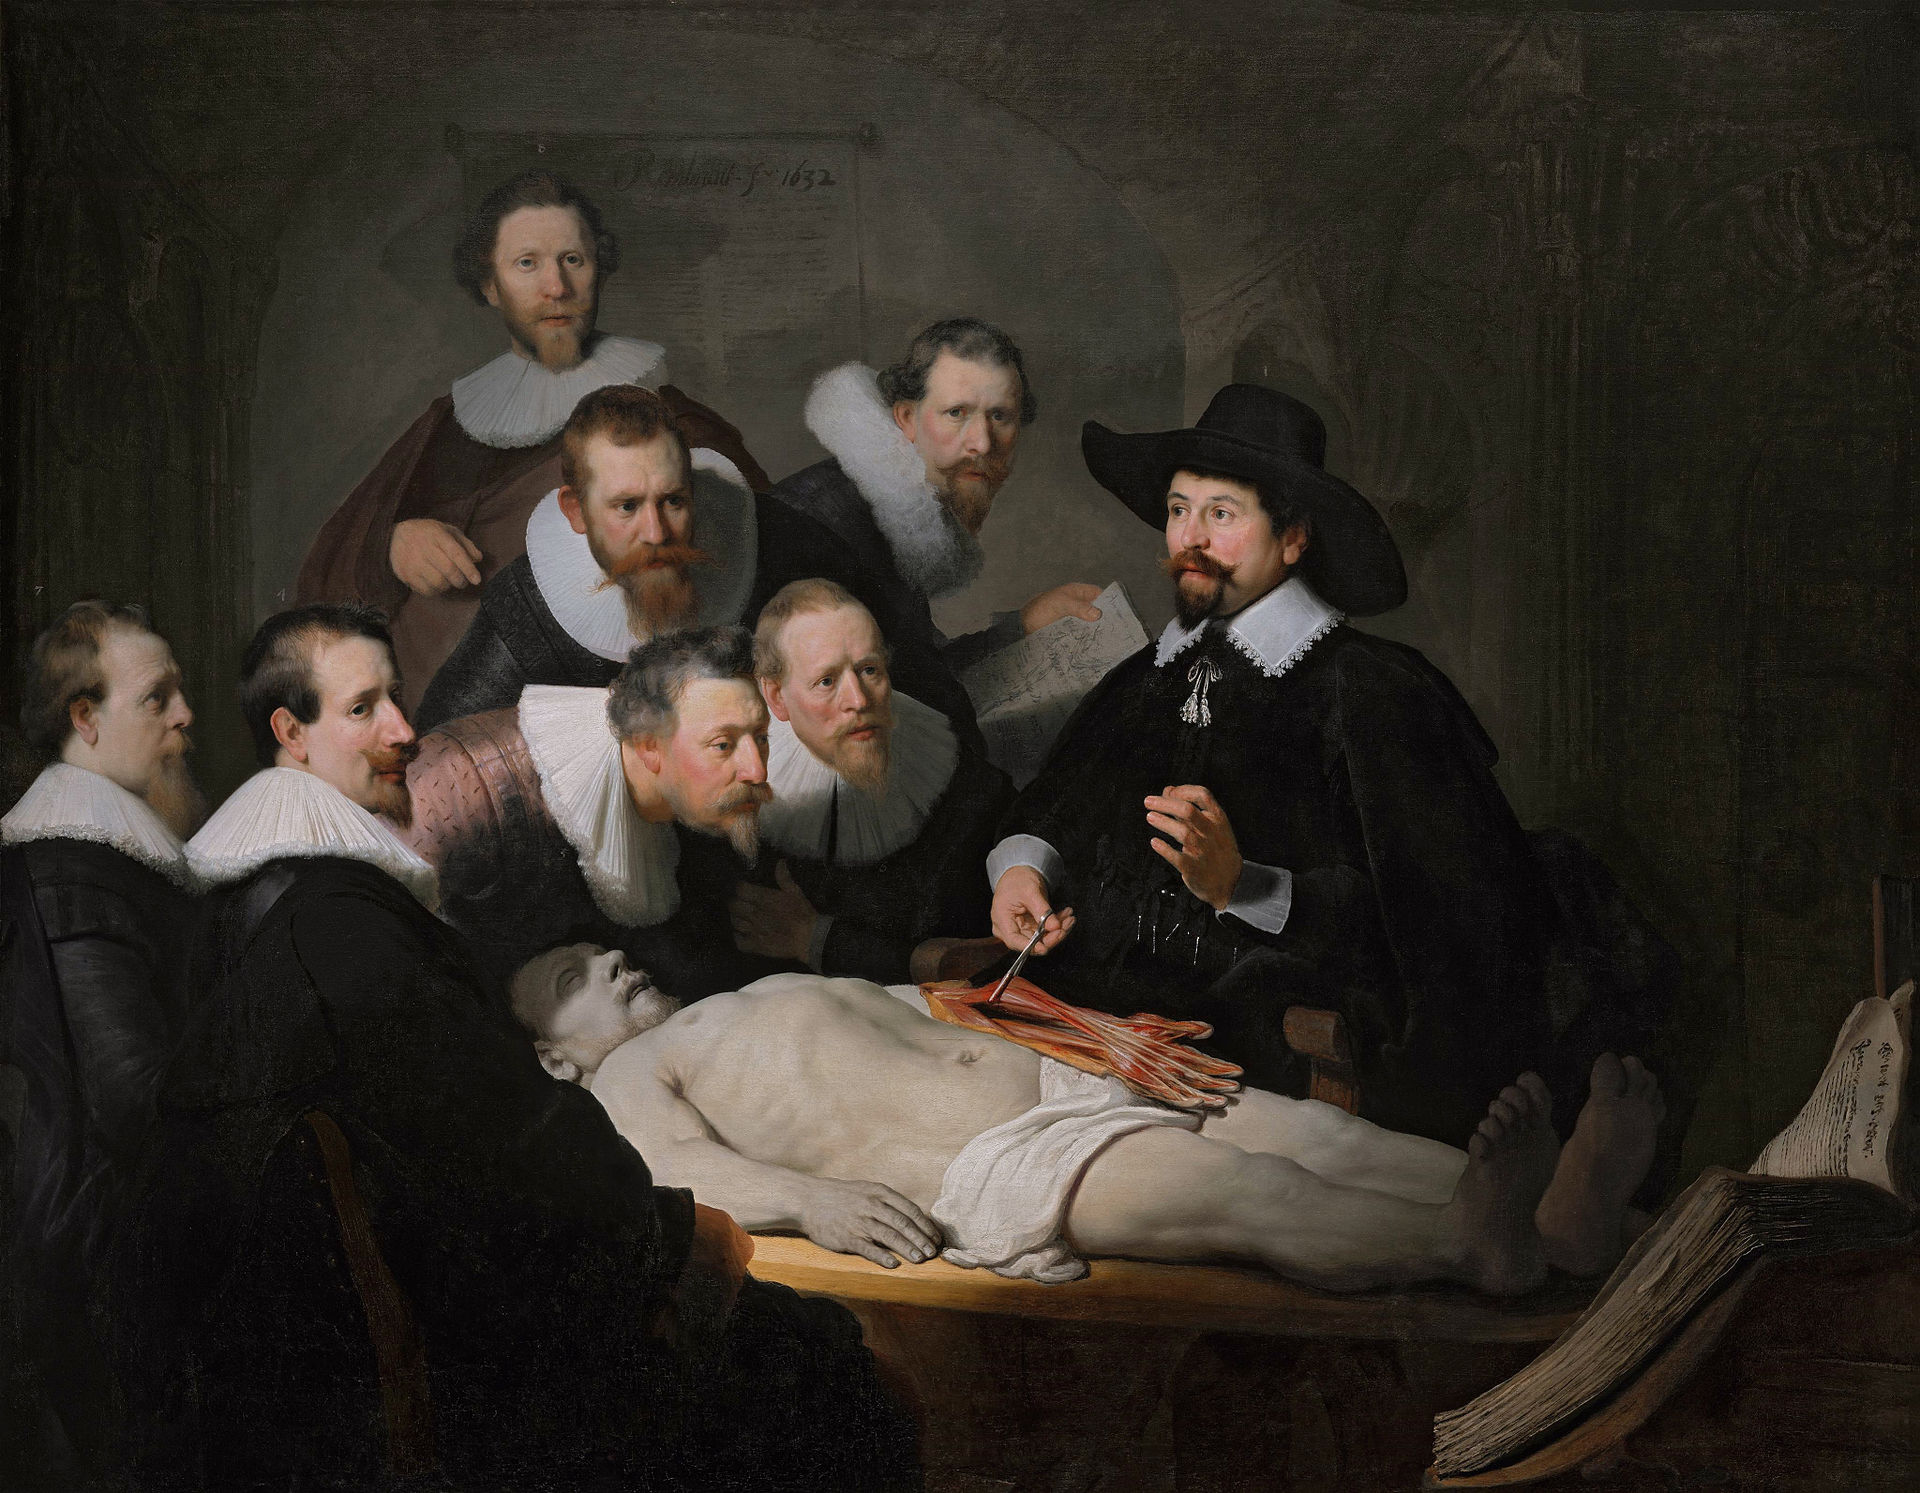 The Anatomy Lesson of Dr Nicolaes Tulp,  Rembrandt, 1632, oil on canvas.